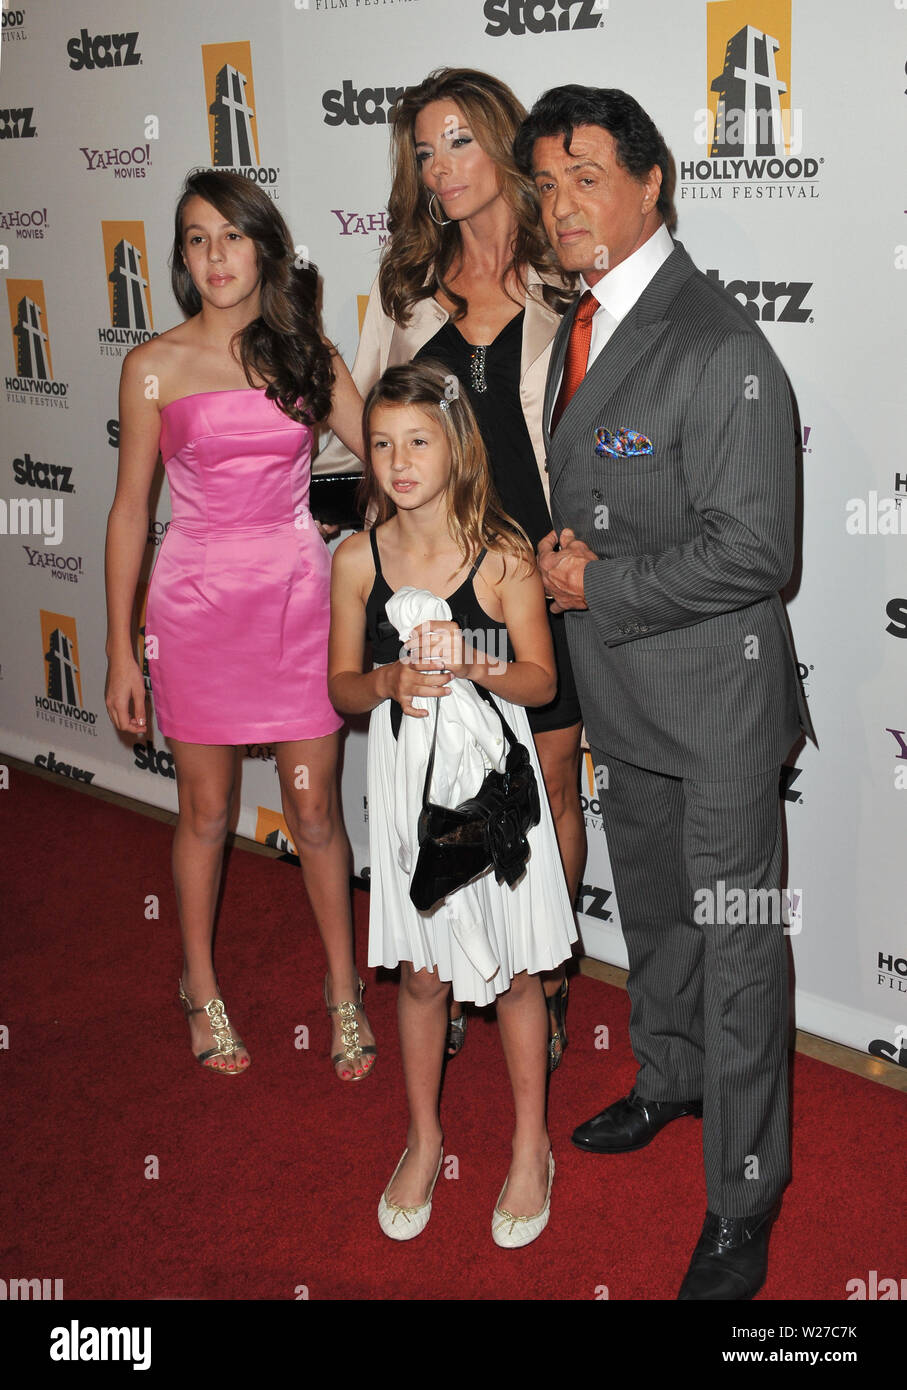 LOS ANGELES, CA. October 25, 2010: Sylvester Stallone & Jennifer Flavin & daughters at the 14th Annual Hollywood Awards Gala at the Beverly Hilton Hotel. © 2010 Paul Smith / Featureflash - Stock Image